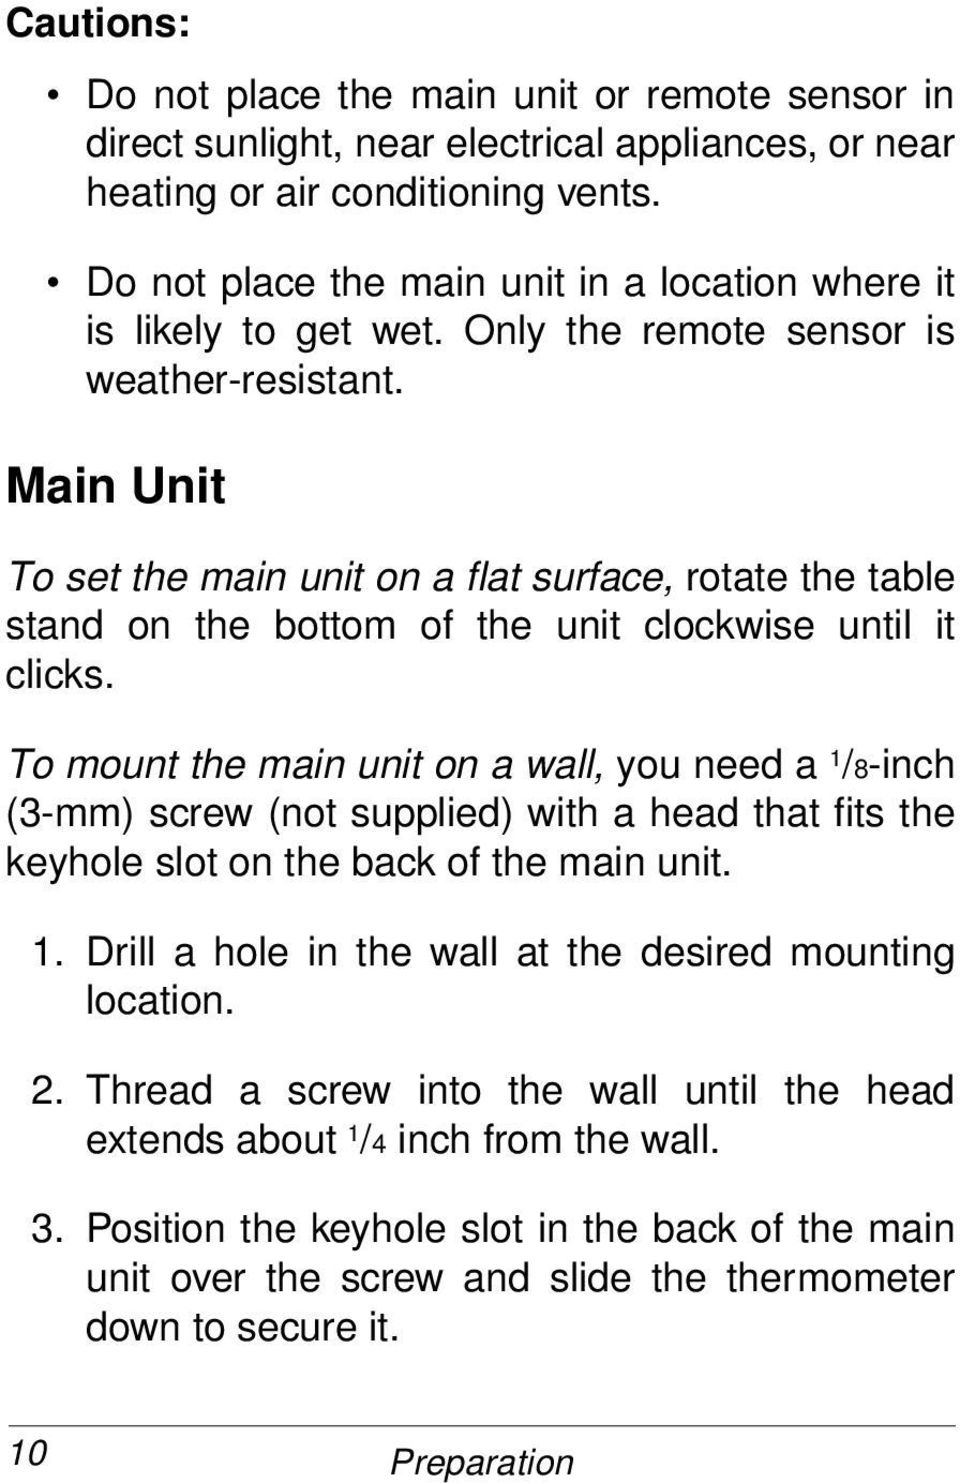 Main Unit To set the main unit on a flat surface, rotate the table stand on the bottom of the unit clockwise until it clicks.